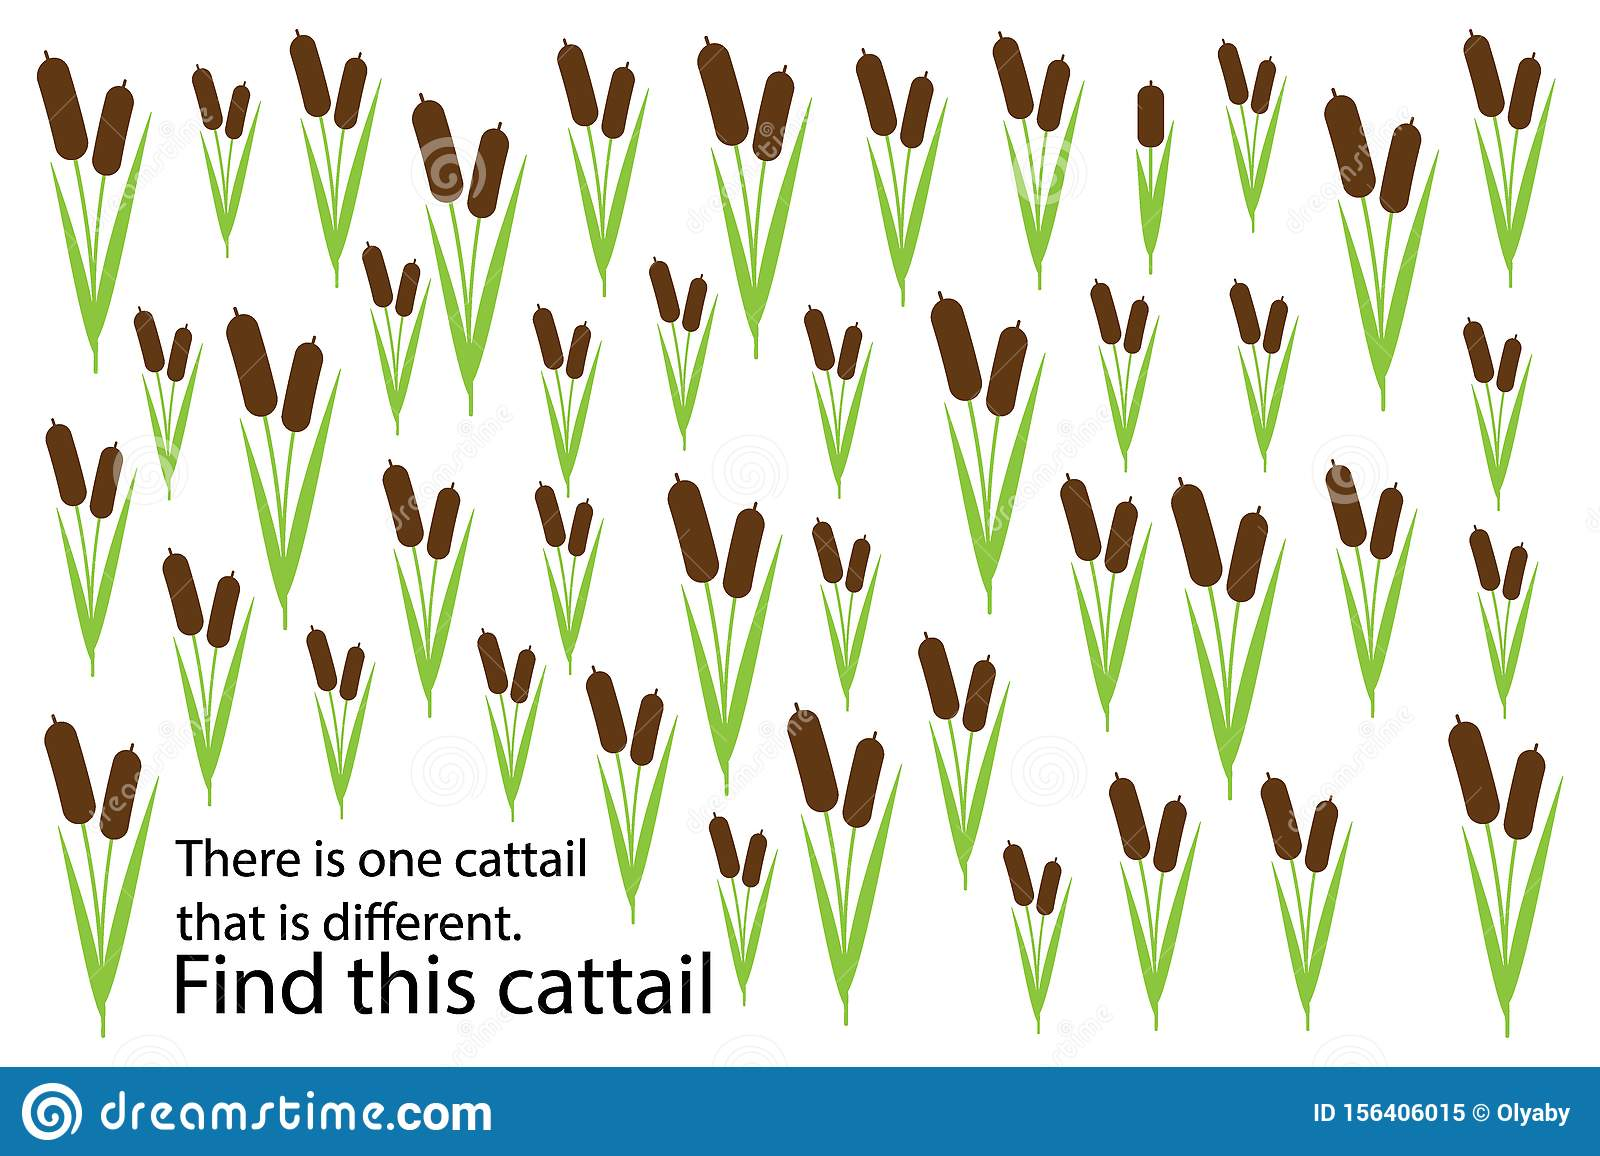 Find Cattail That Different Education Puzzle Game For